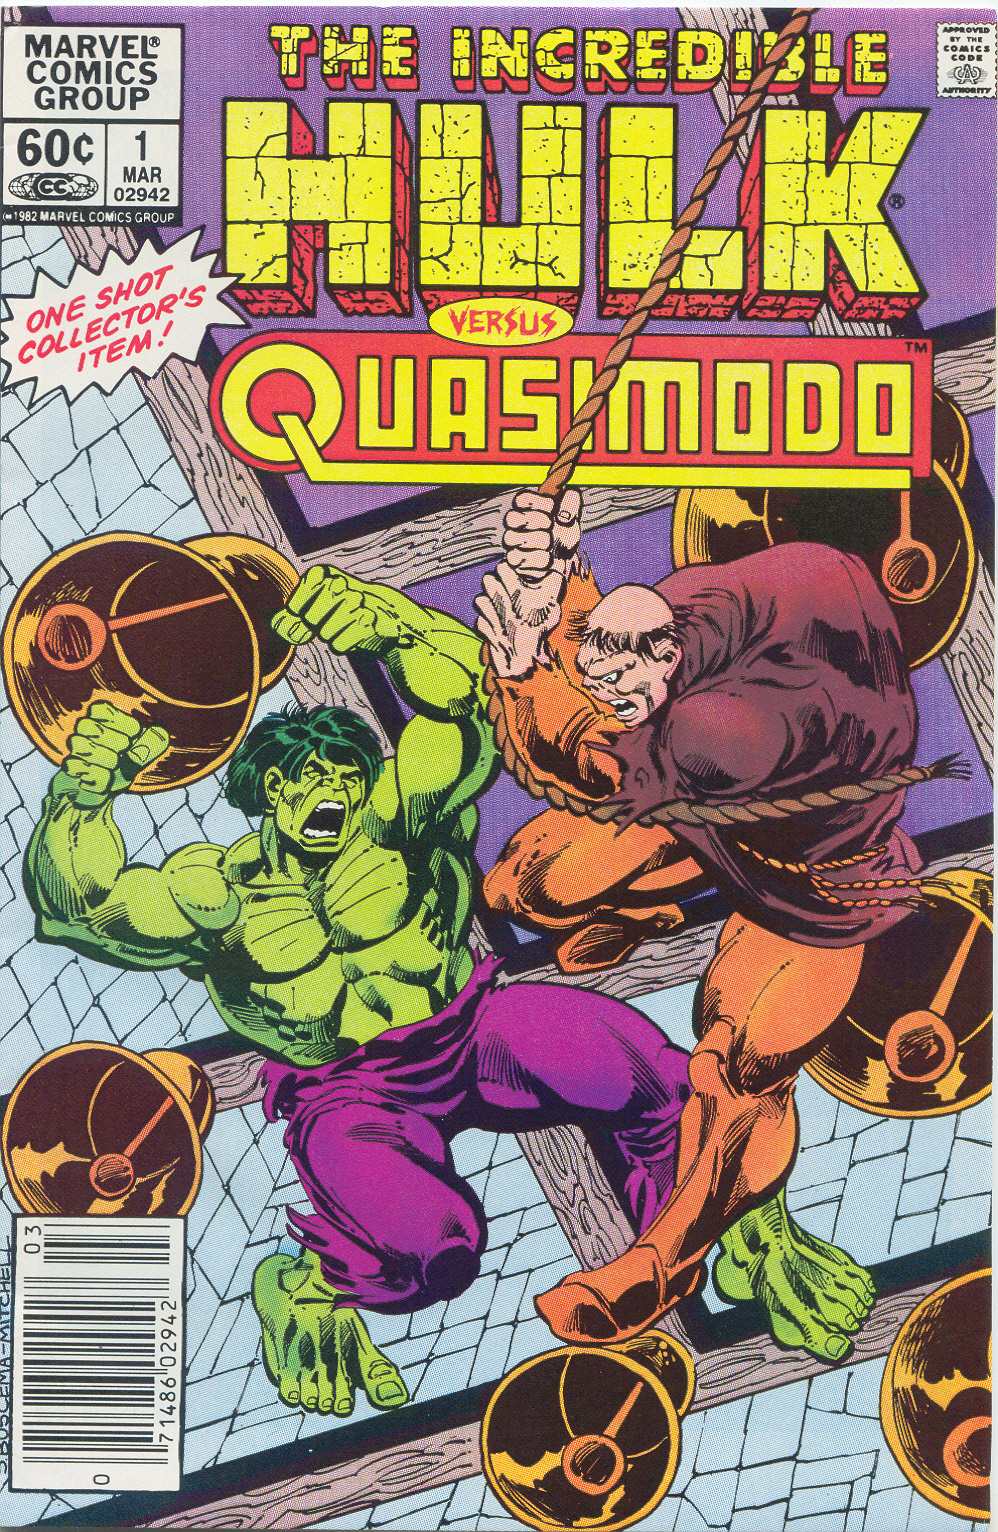 Incredible Hulk Versus Quasimodo (1983) #1, cover penciled by Sal Buscema & inked by Steve Mitchell.